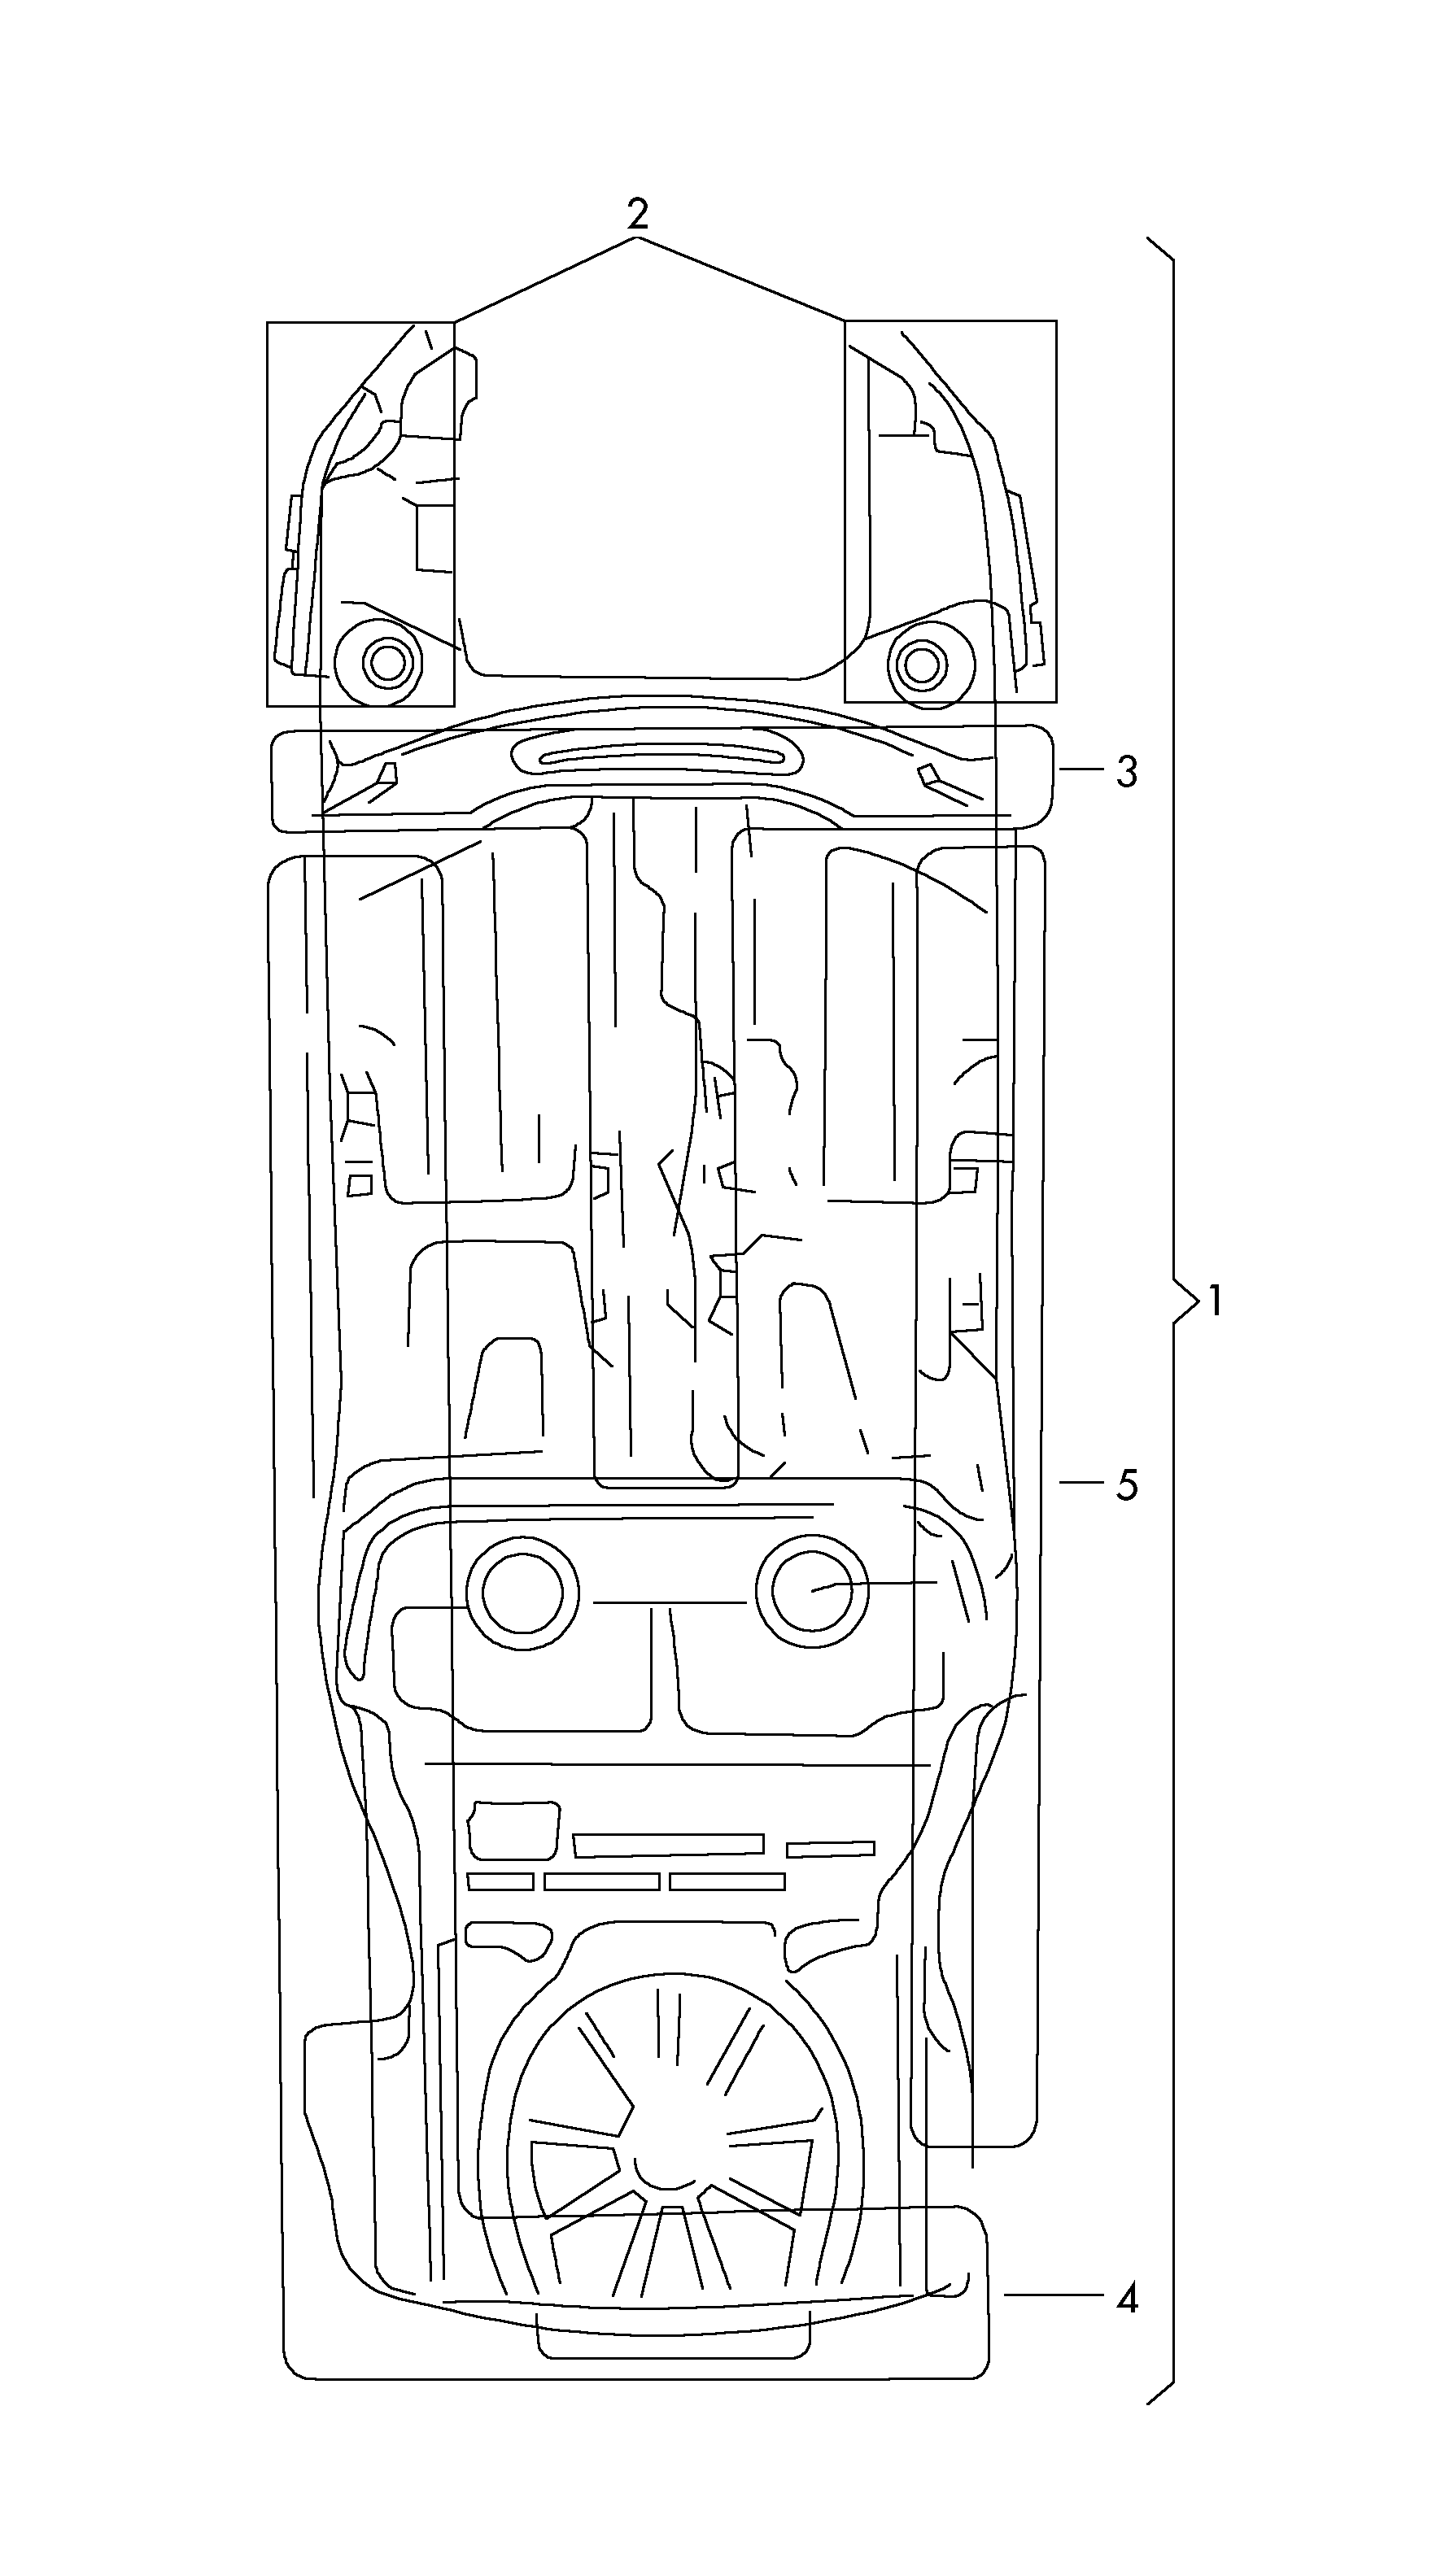 Wrg Skoda Fabia Central Locking Wiring Diagram